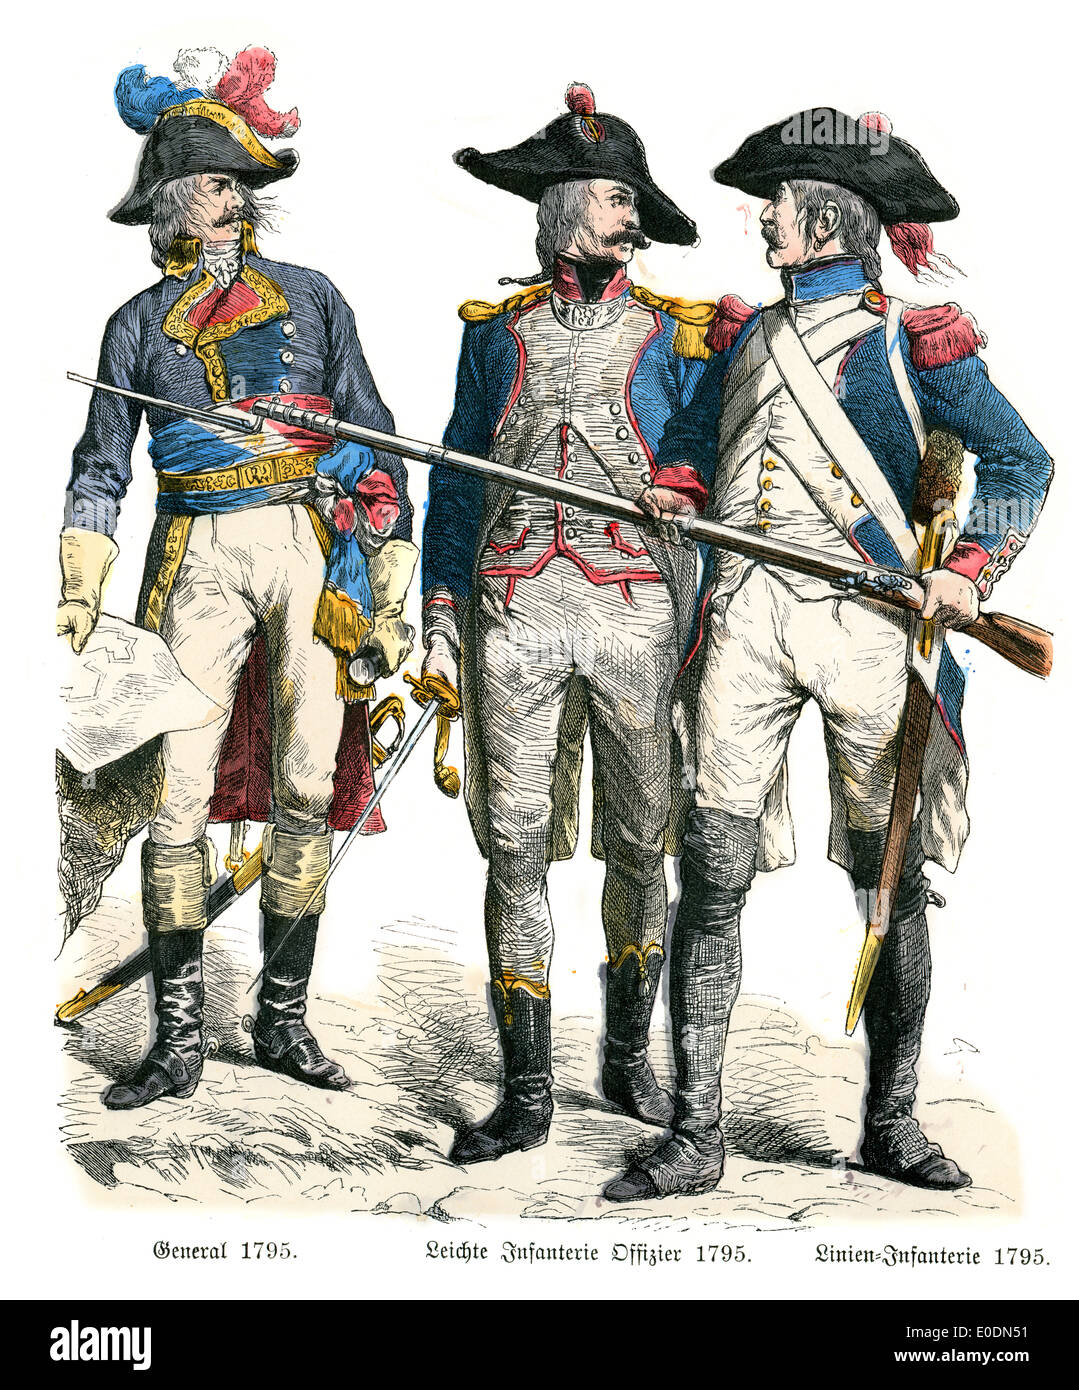 Traditional costumes of France. General, Light Infantry Officer and Line Infantry of the late 18th Century Stock Photo